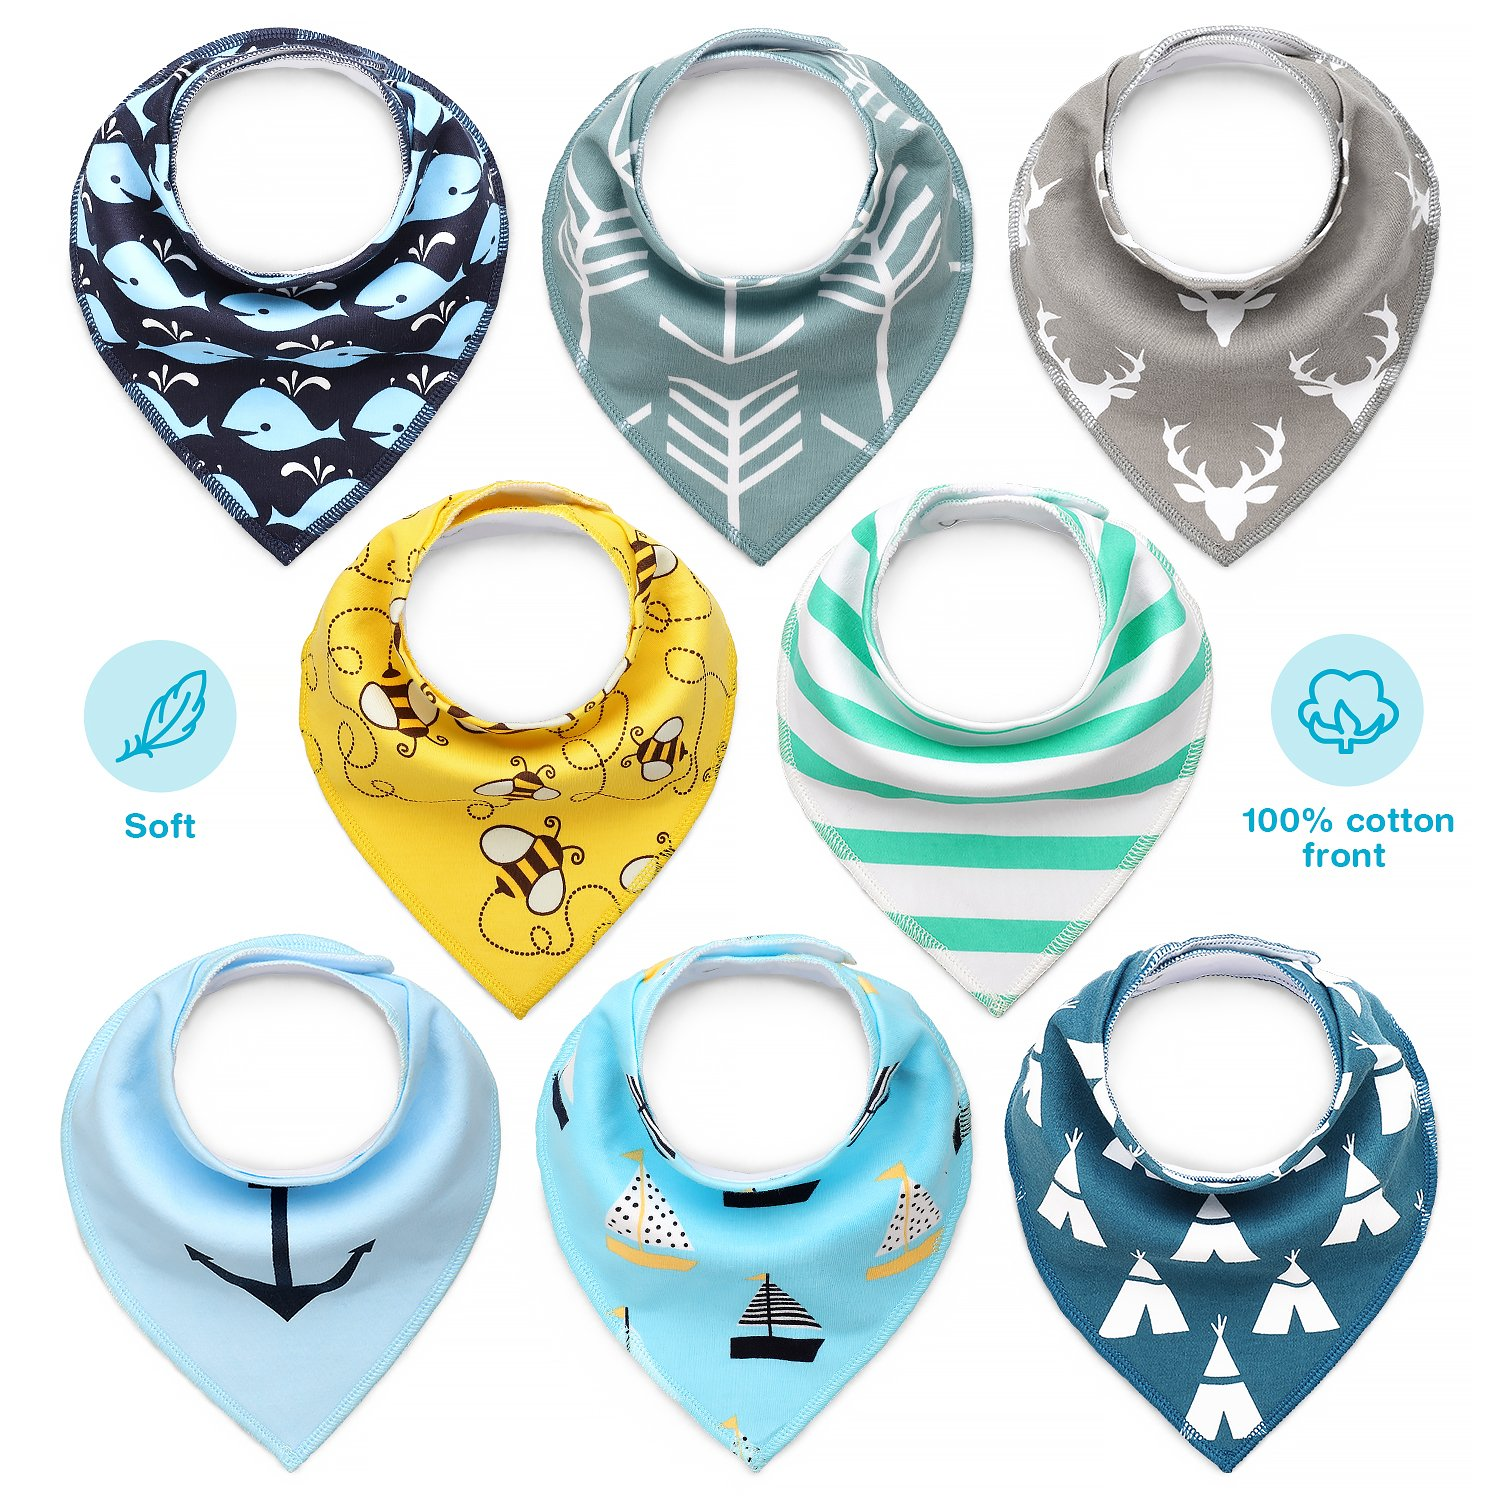 Baby Bandana Dribble,COOLJOY Bibs and Drool Bibs Super Absorbent for Teething Babies, Fits Newborn to Toddler, Award Winning for Boys & Girls (Pack of 8)